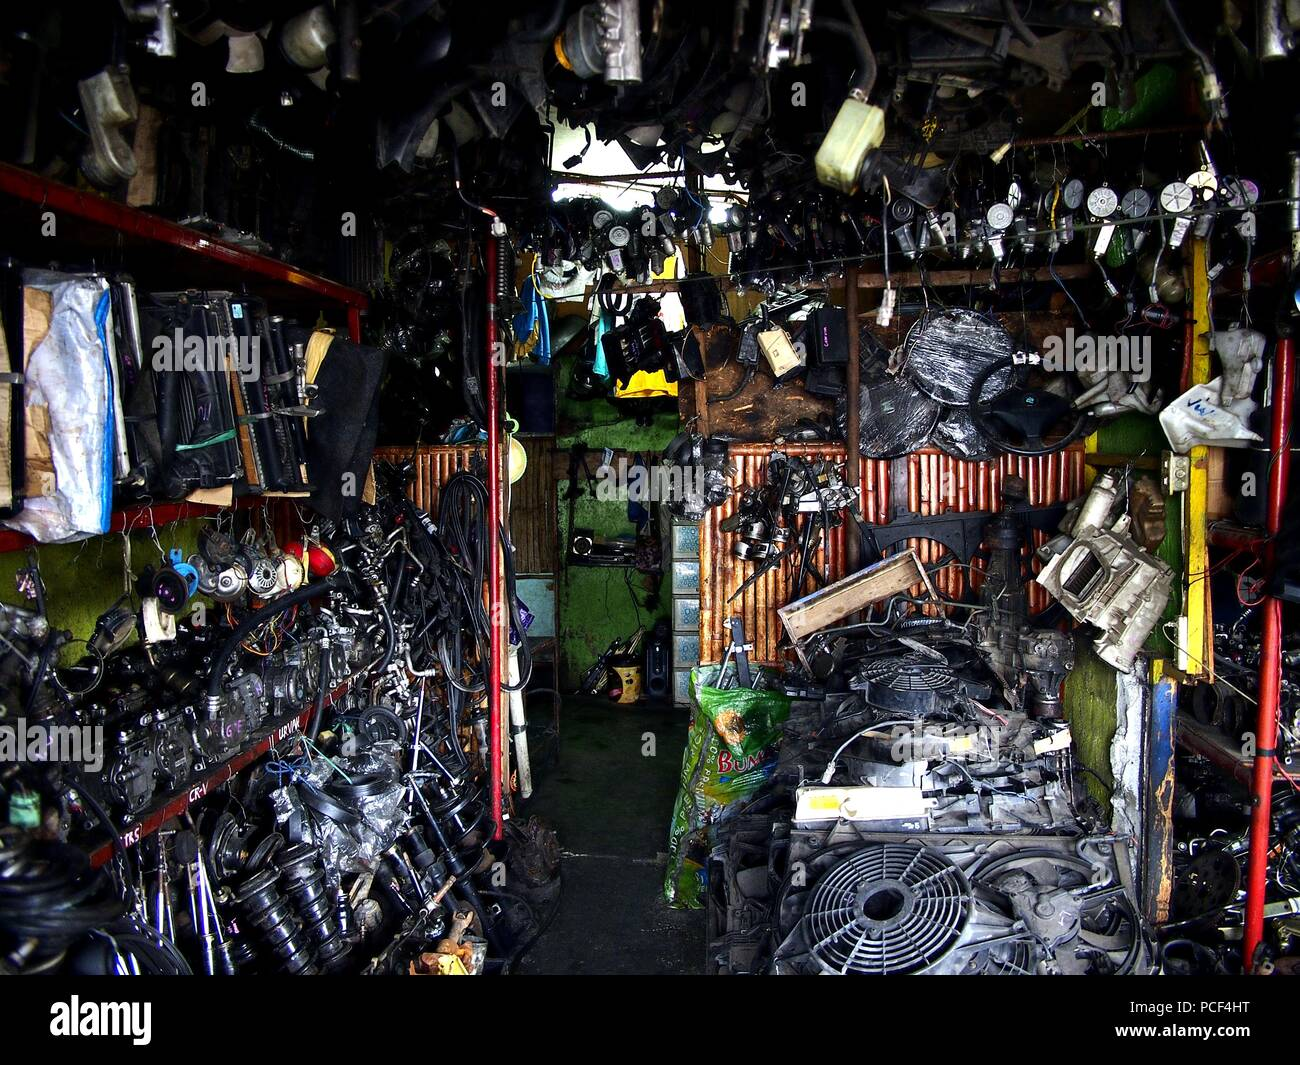 Auto Repair Shop For Sale Philippines: Car Spare Parts Stock Photos & Car Spare Parts Stock